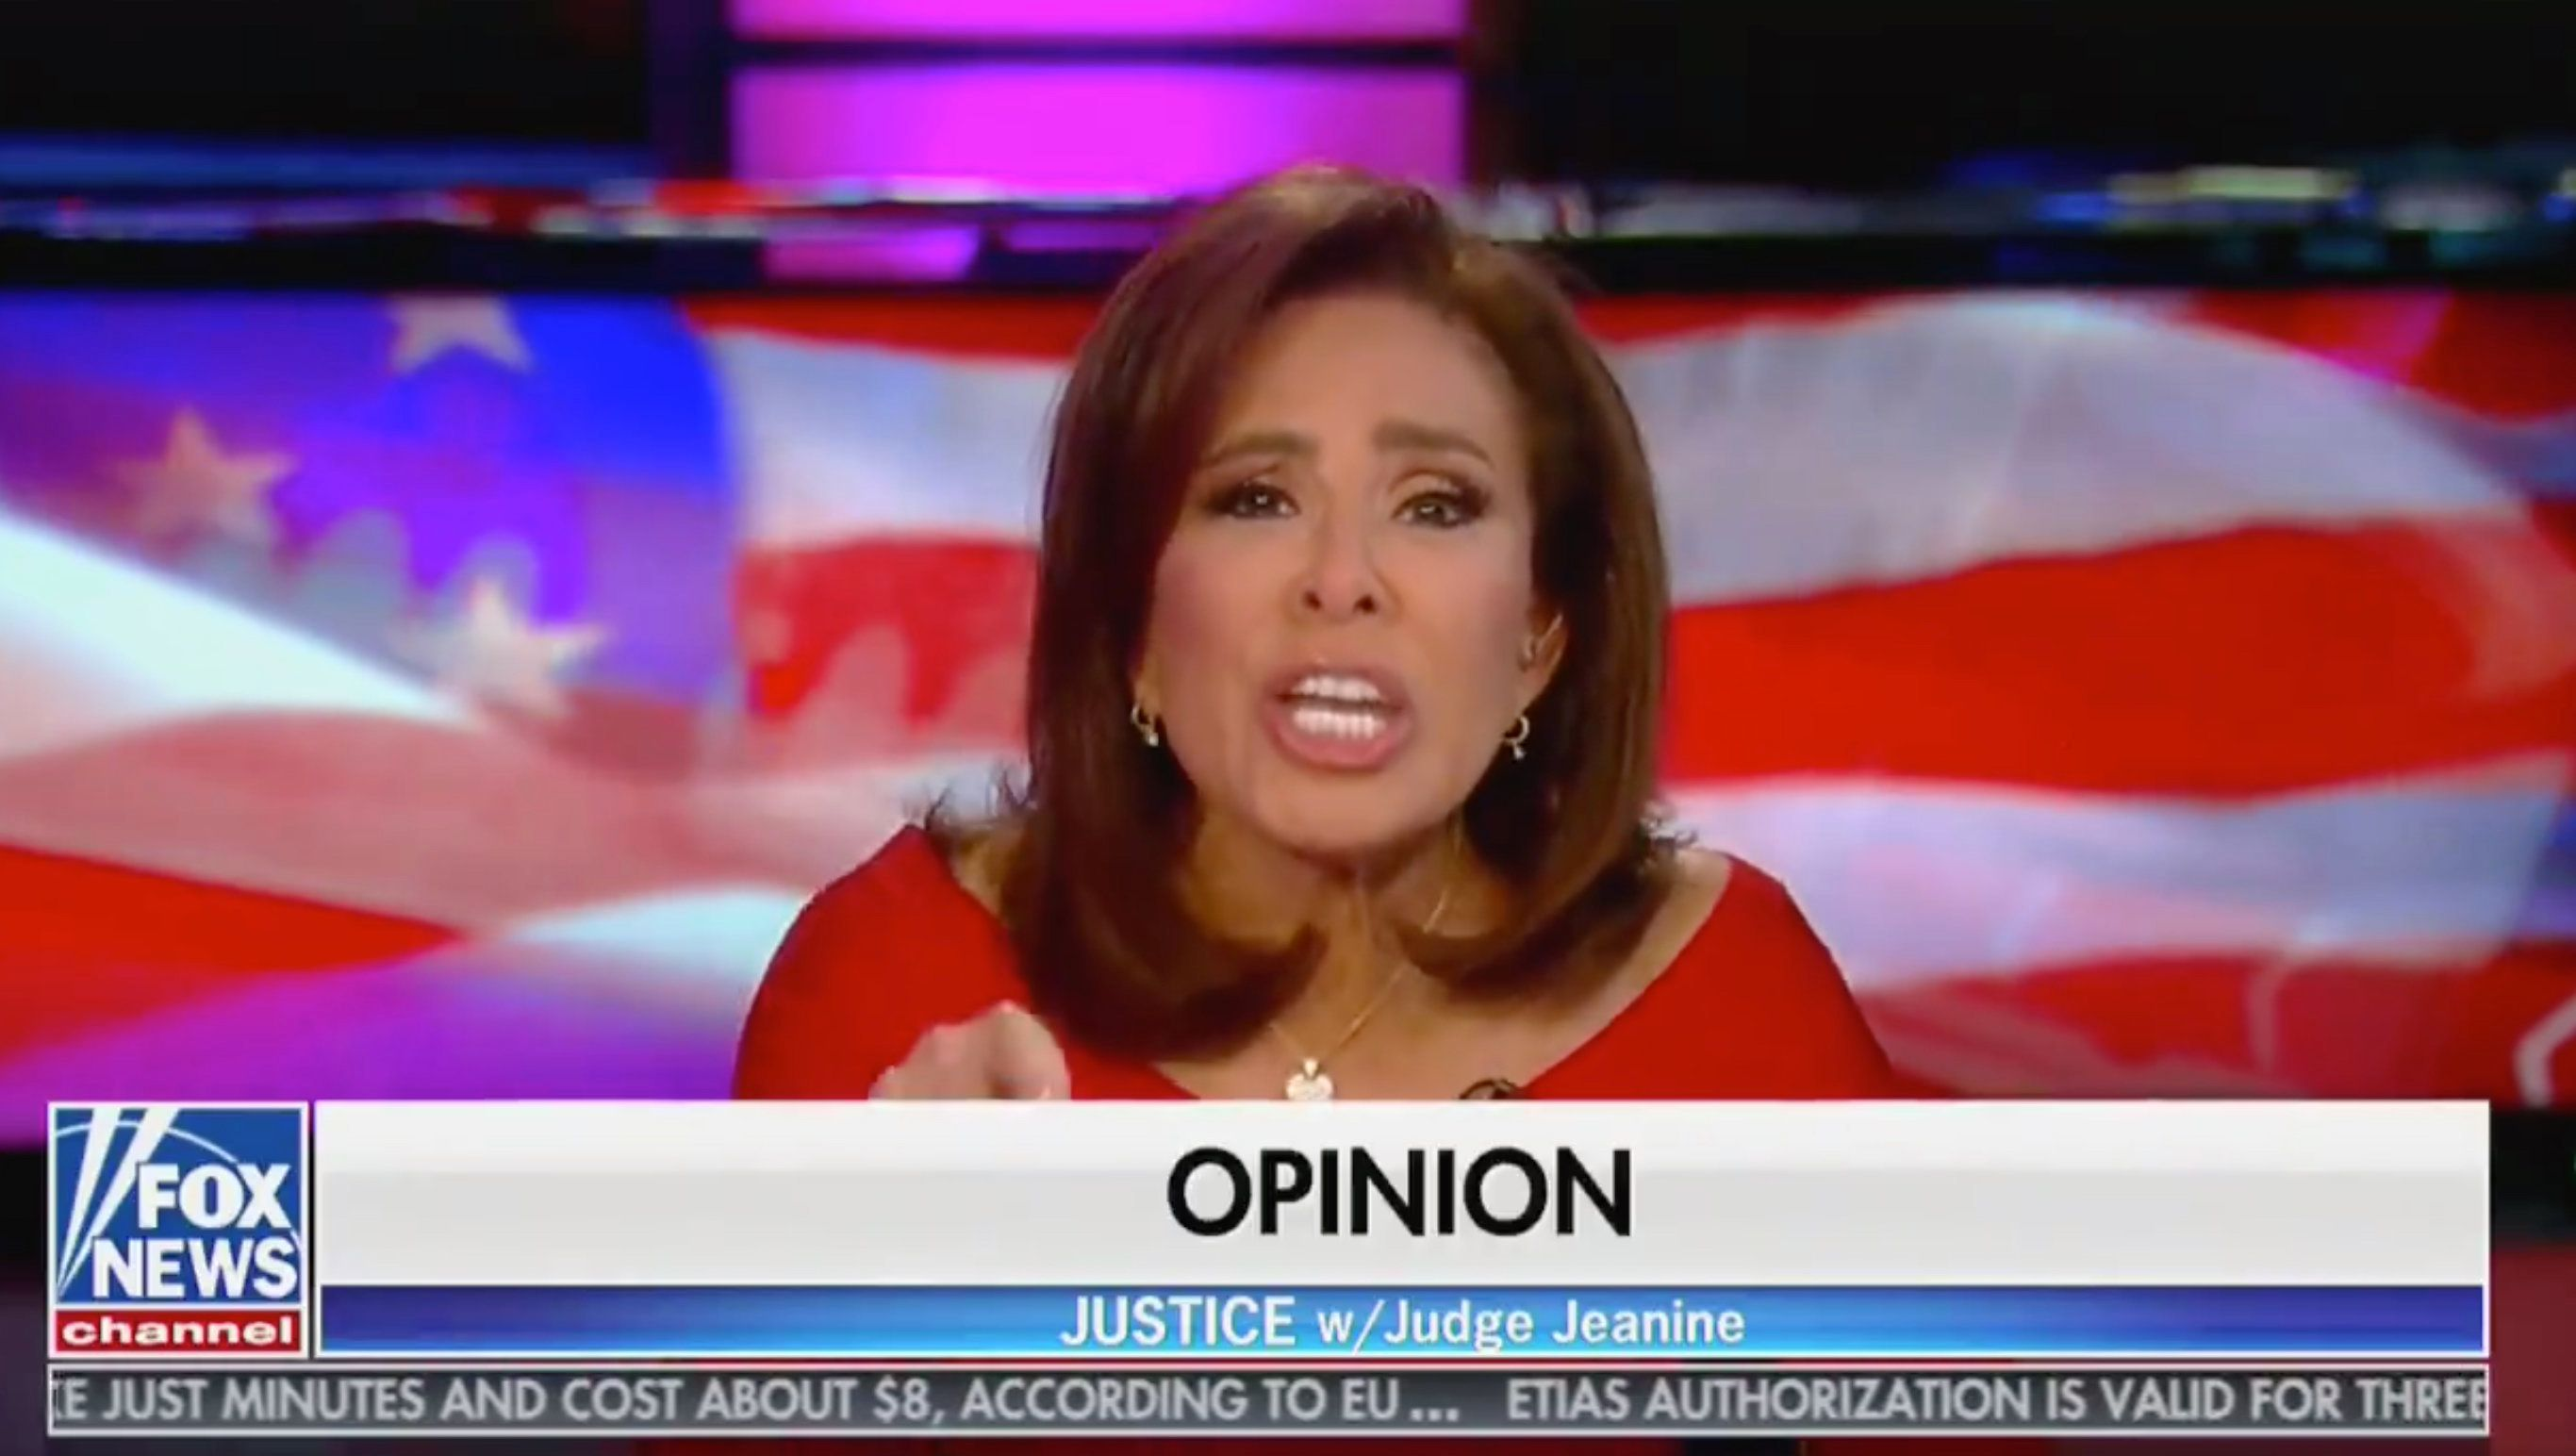 In a thinly-disguised show of Islamophobia on Saturday, Fox News host Jeanine Pirro questioned whether Rep. Ilhan Omar's (D-Minn.) hijab conflicts with the principles of the U.S. Constitution.